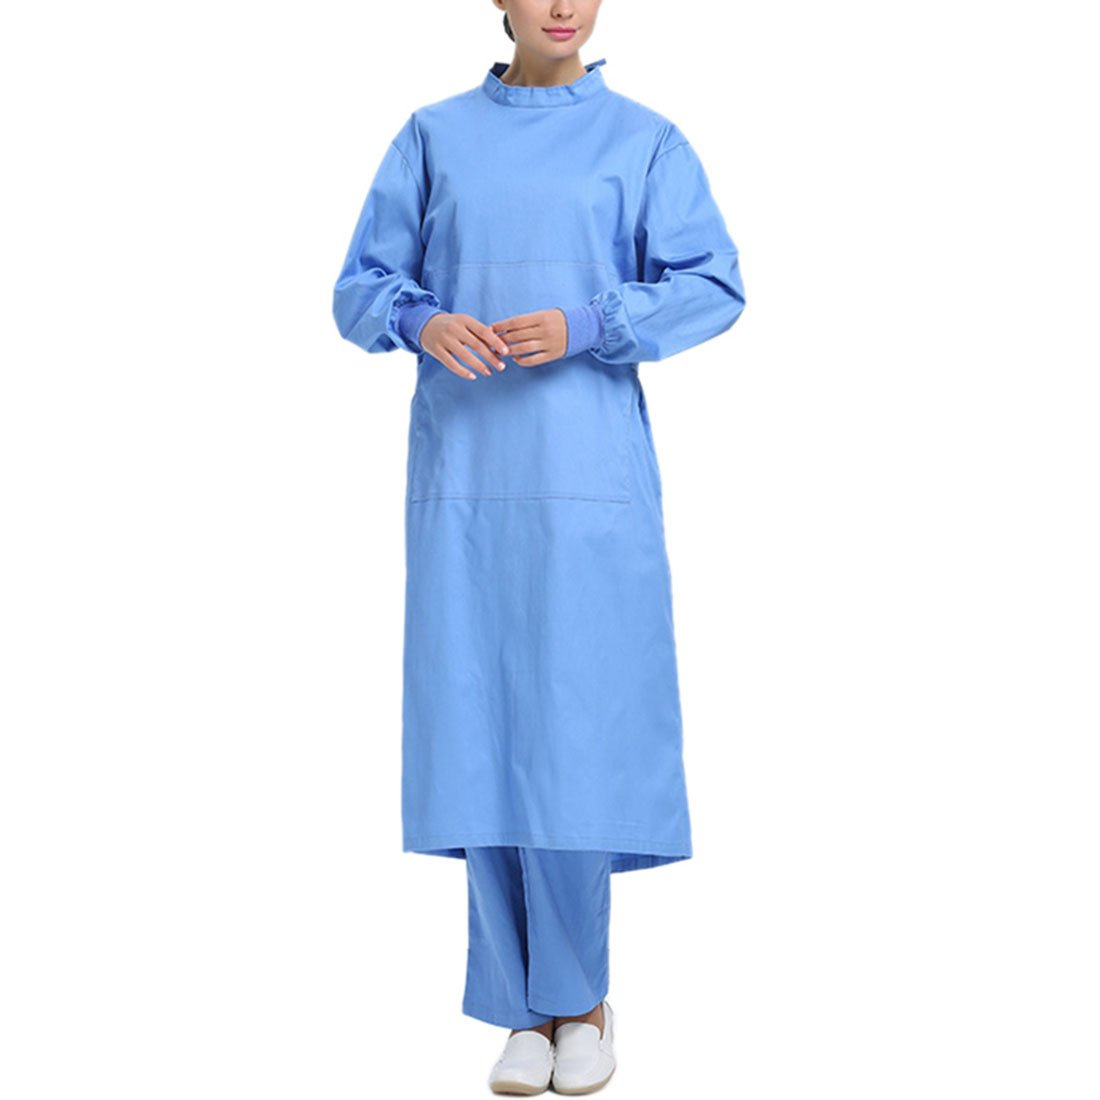 Pinji Surgical Gown Semi-coated Cotton Surgical Clothes High Temperature Resistance Workwear for Hospital Blue(Women) S by Pinji